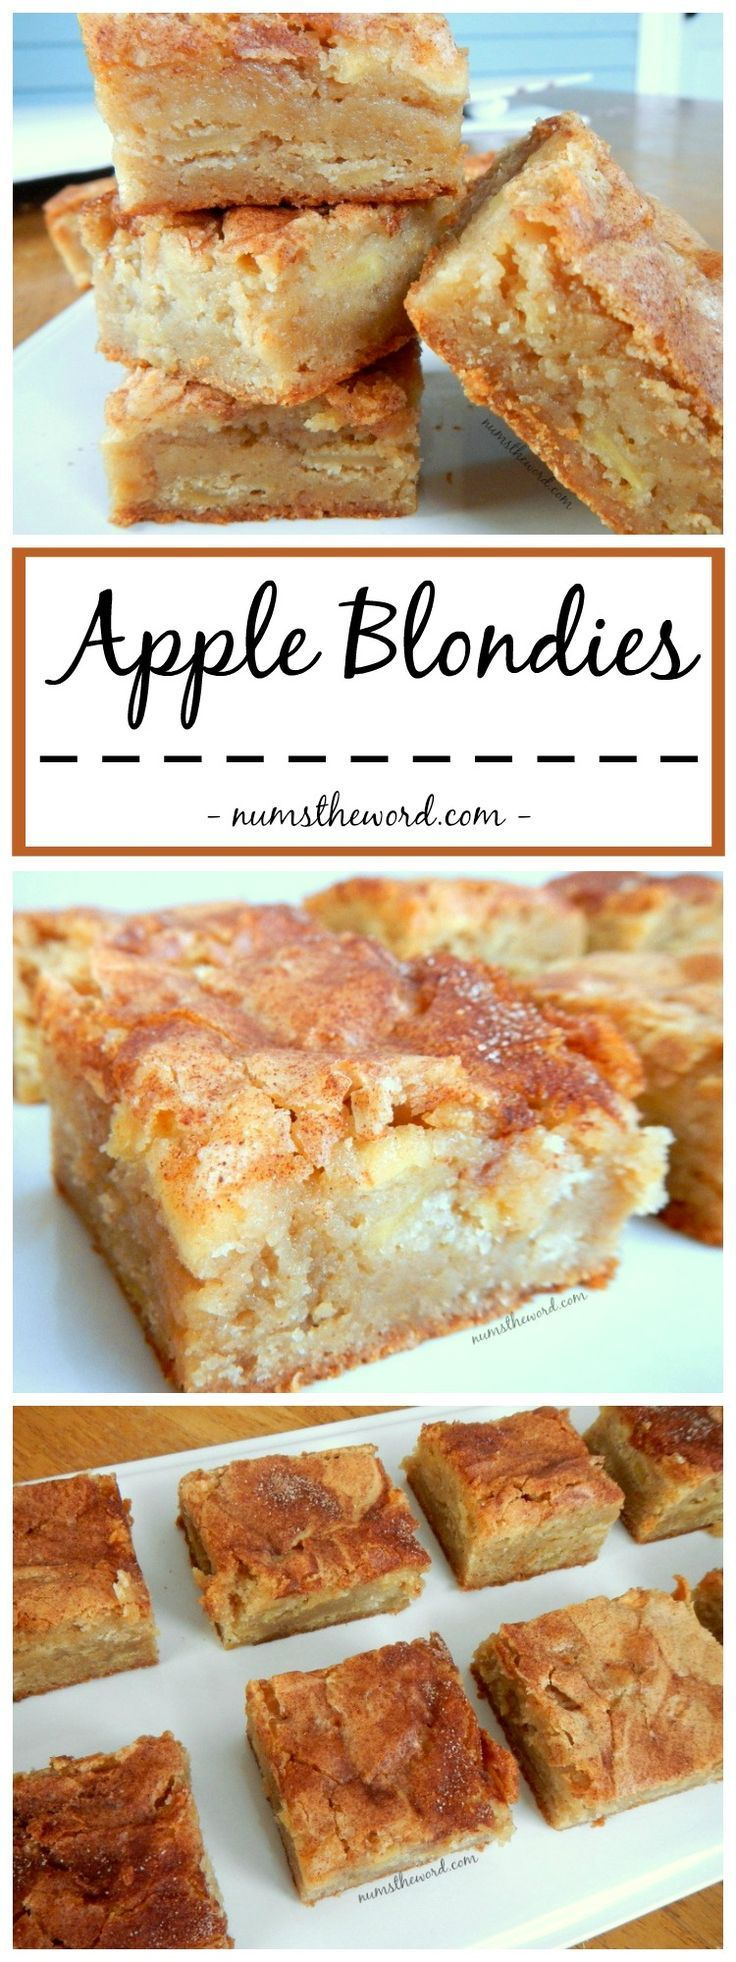 *VIDEO* Apple Blondies - A perfect Autumn dessert that mixes apple pie and blondies. Yummy Apple Blondies with a large scoop of vanilla ice cream is the perfect dessert or skip the ice cream and make it a snack! #dessert #bar #brownies #blondies #appleblondies #applebrownies #autumn #snackcake #recipe #numstehword #video